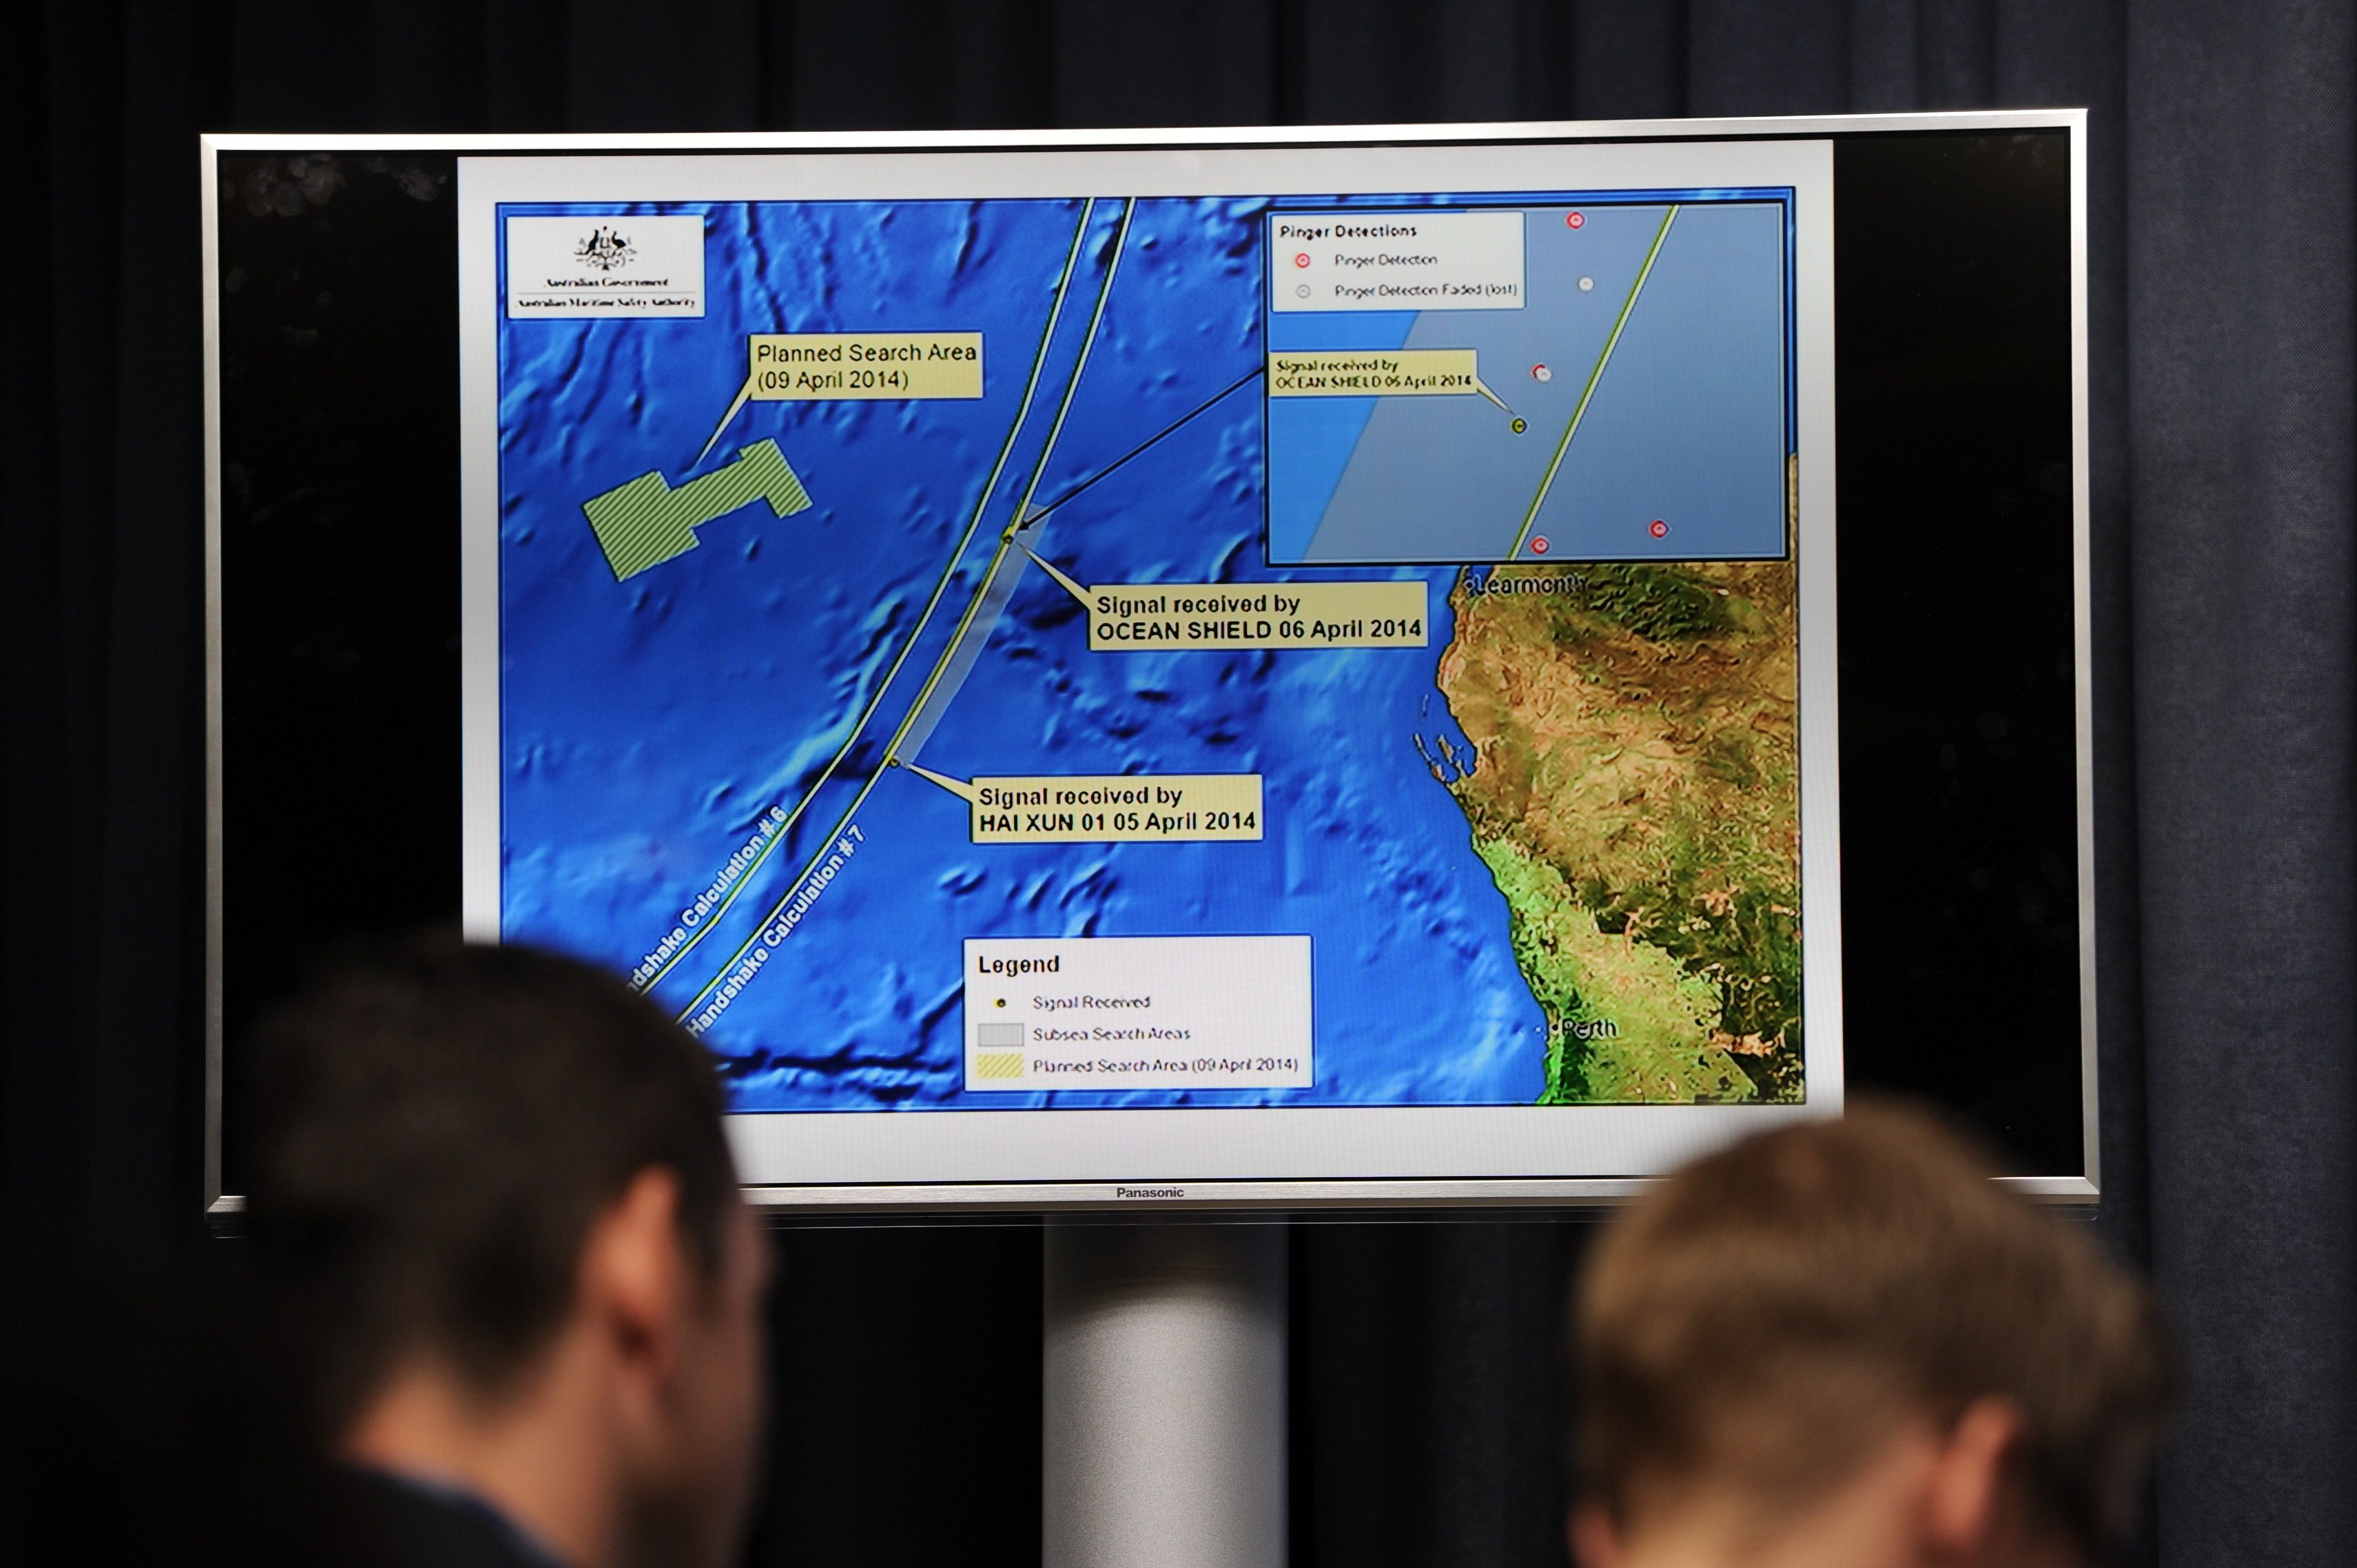 A graphic of the area being searched for missing Malaysia Airlines flight MH370